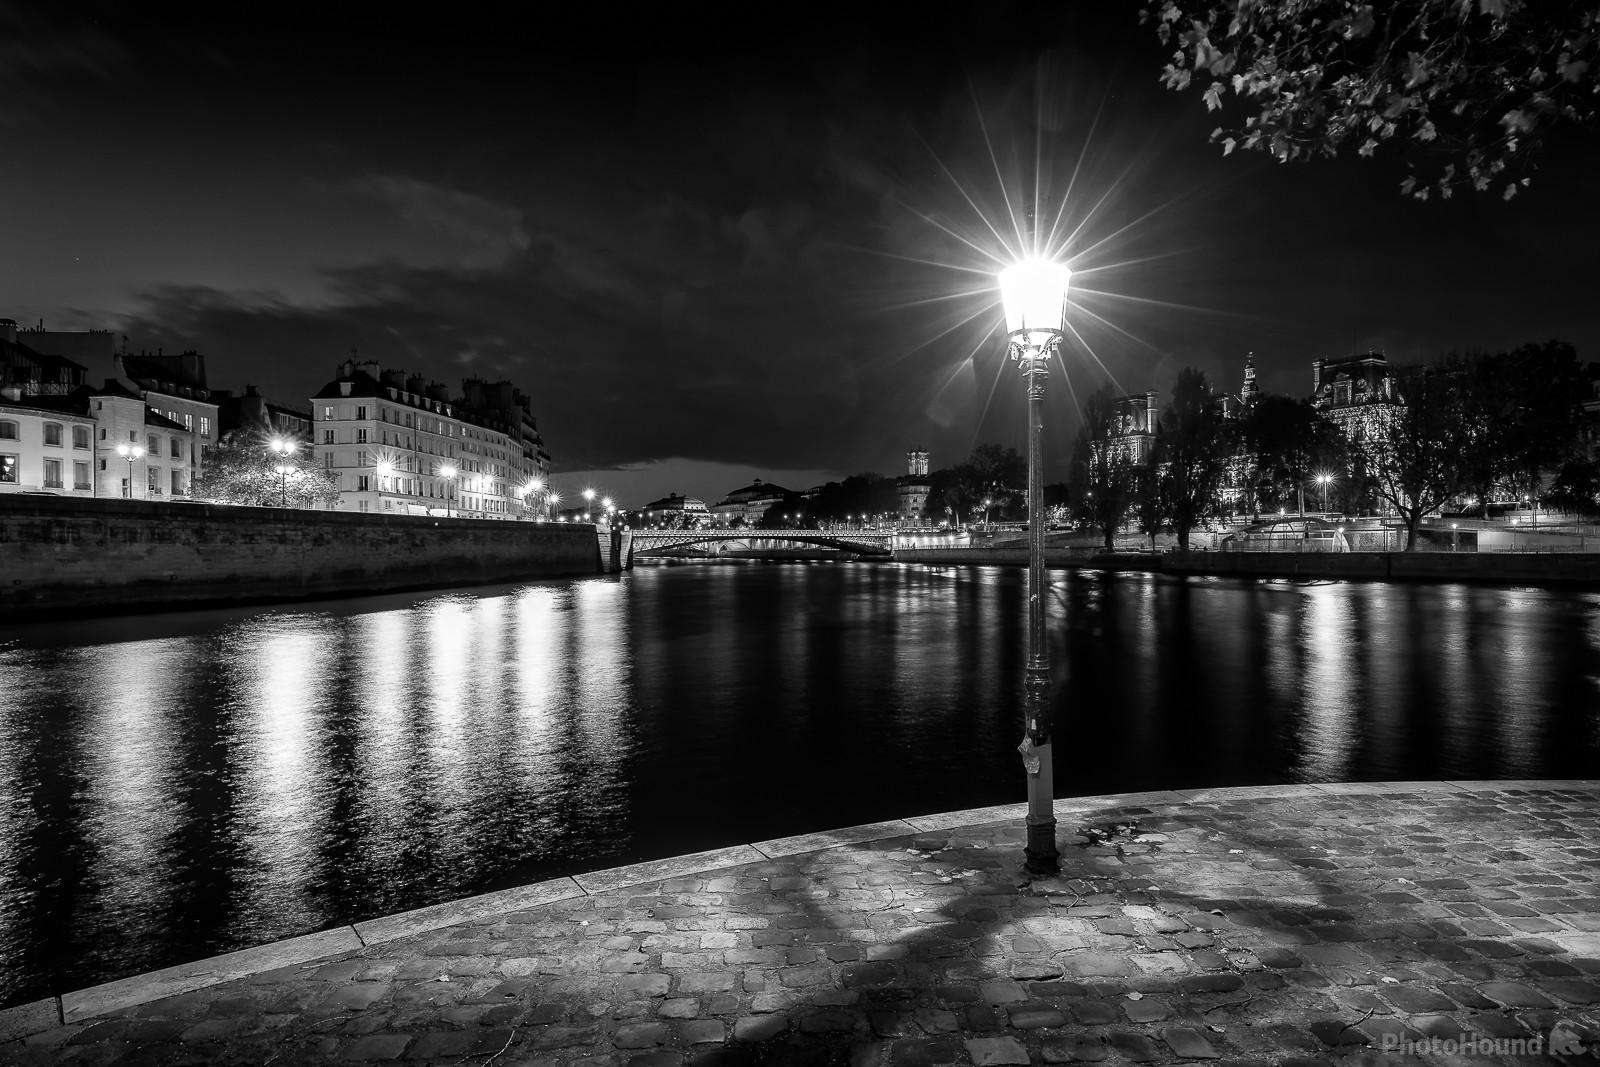 Start of night on the Square Louis Aragon at the end of Ile St-Louis in Paris in B/W. In the distance, you can see Pont d'Arcole on the Seine, the Paris City Hall, the city Theater, the Chatelet Theater and the Tour Saint-Jacques.